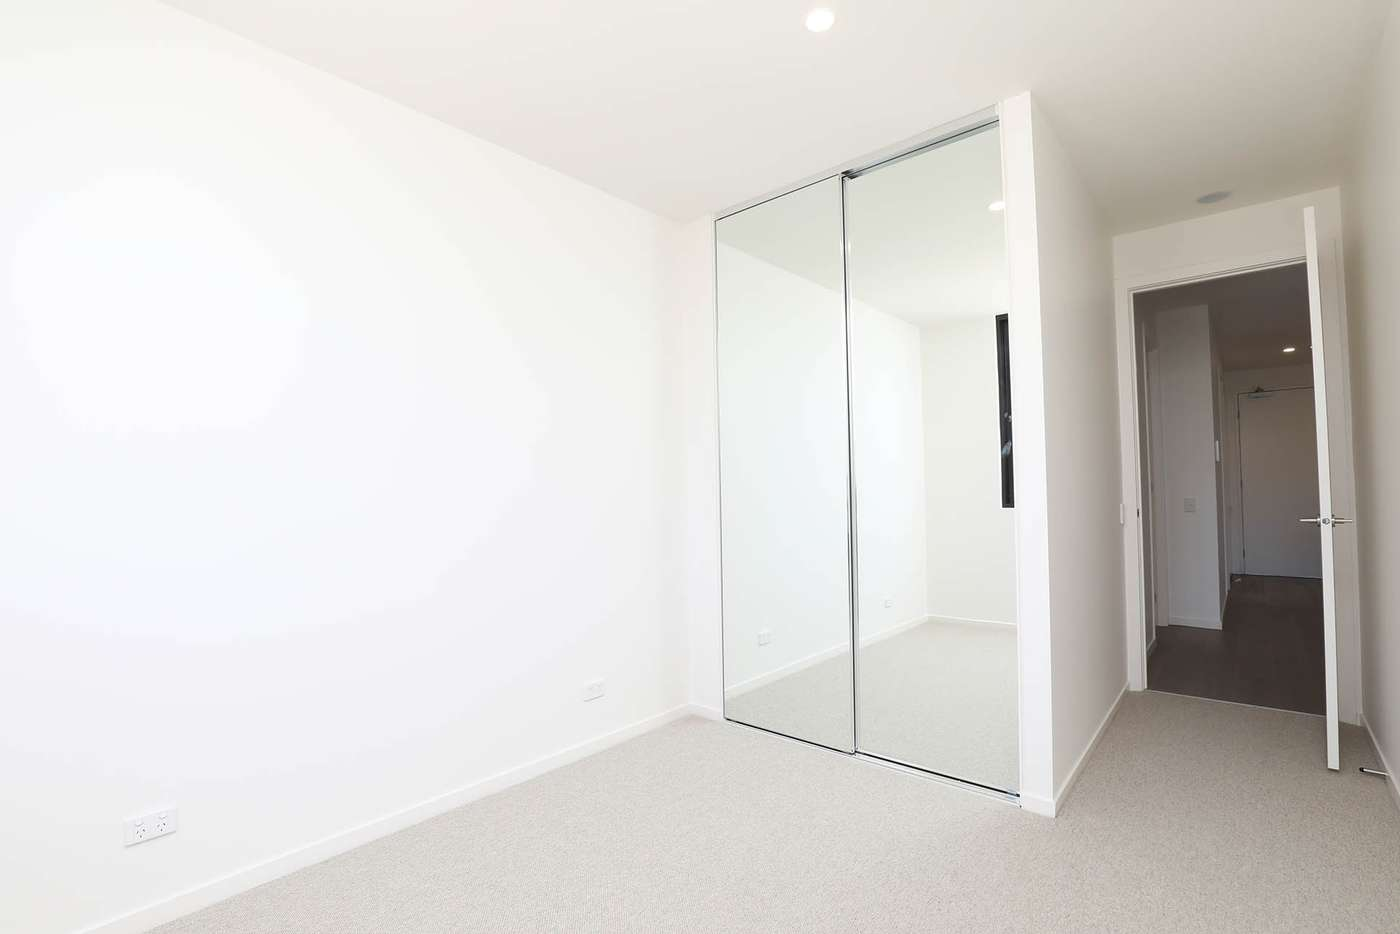 Seventh view of Homely apartment listing, 114/138 Glen Eira Road, Elsternwick VIC 3185